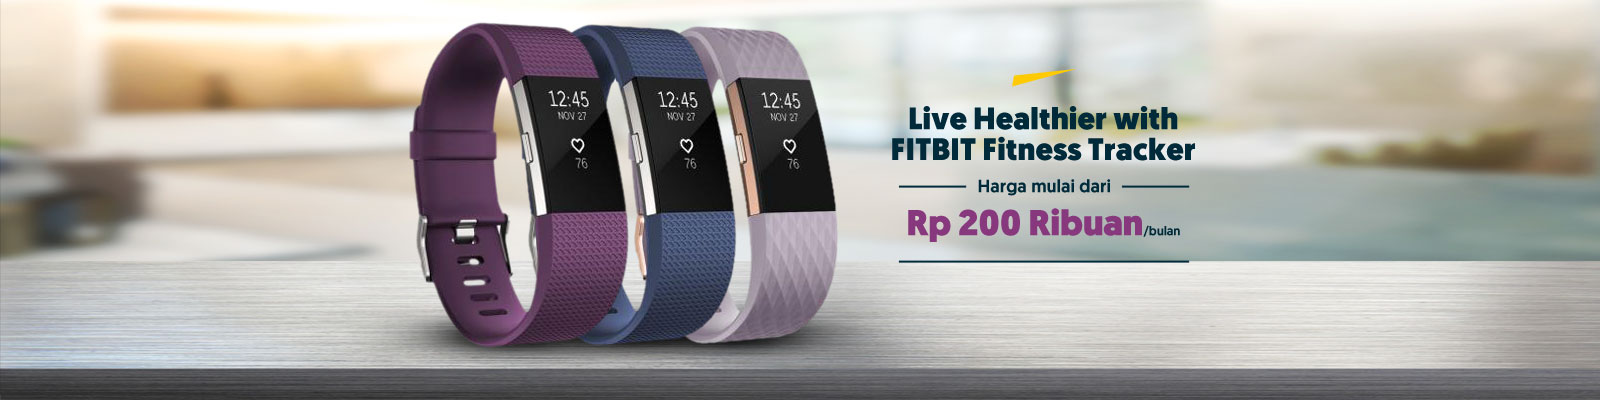 Special Fitbit